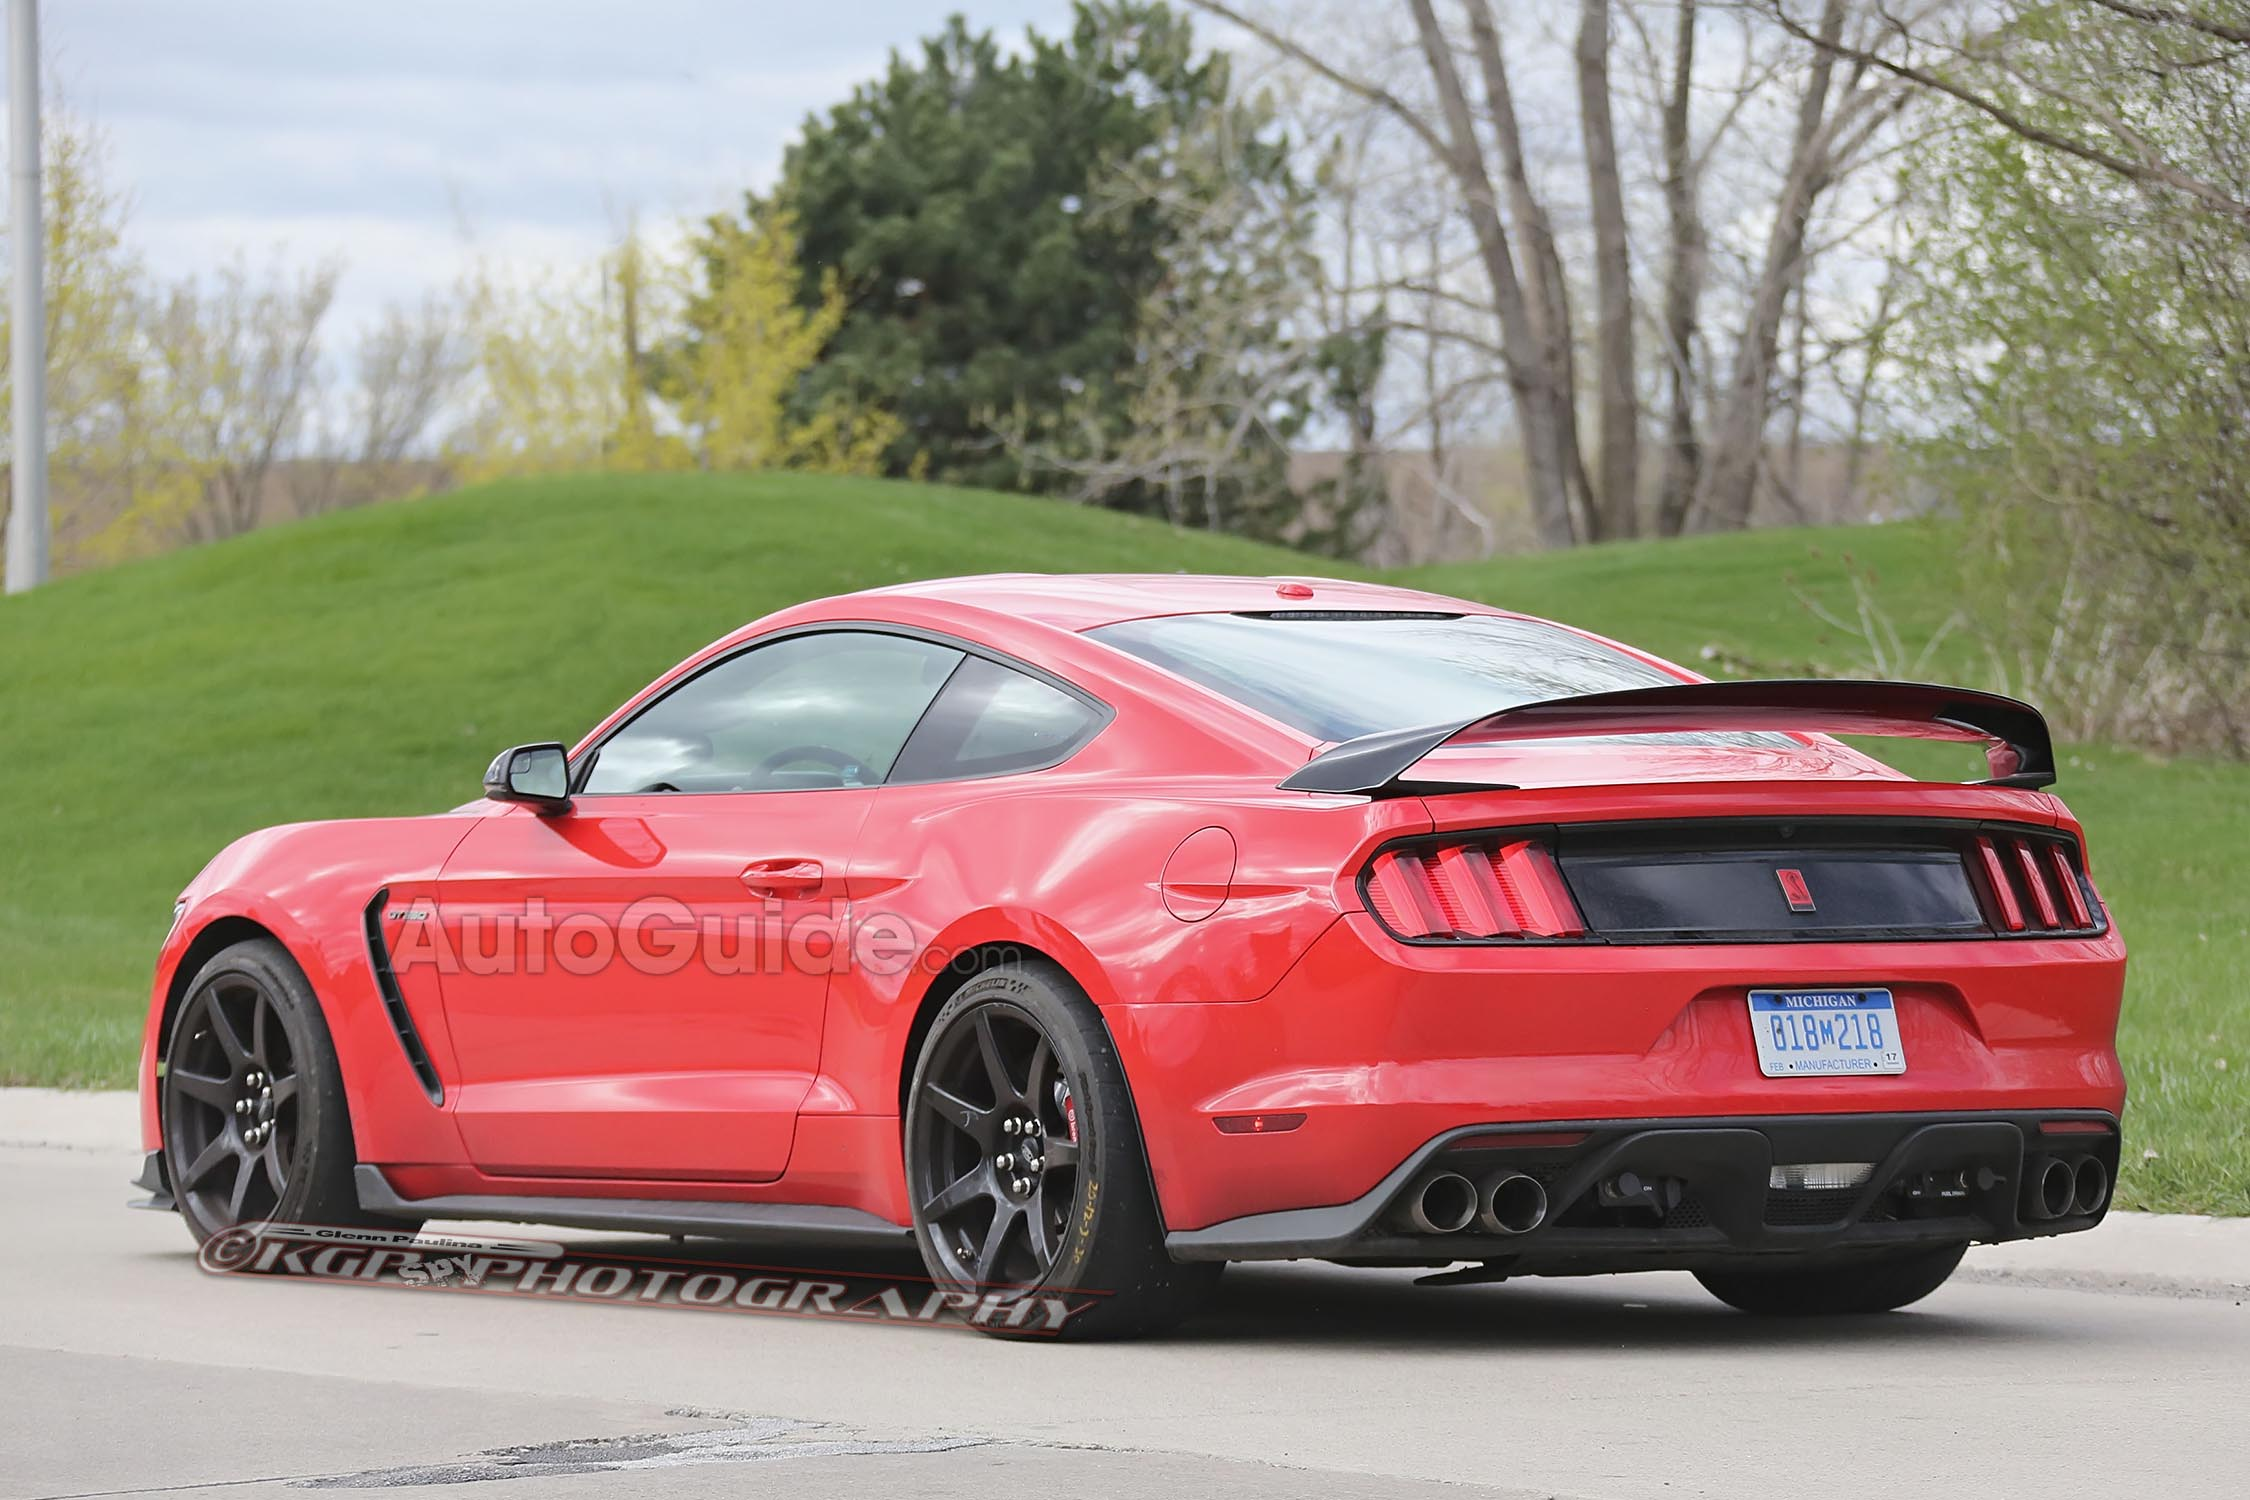 Image Result For The Spy Shots Ford Mustang Svt Gt Price